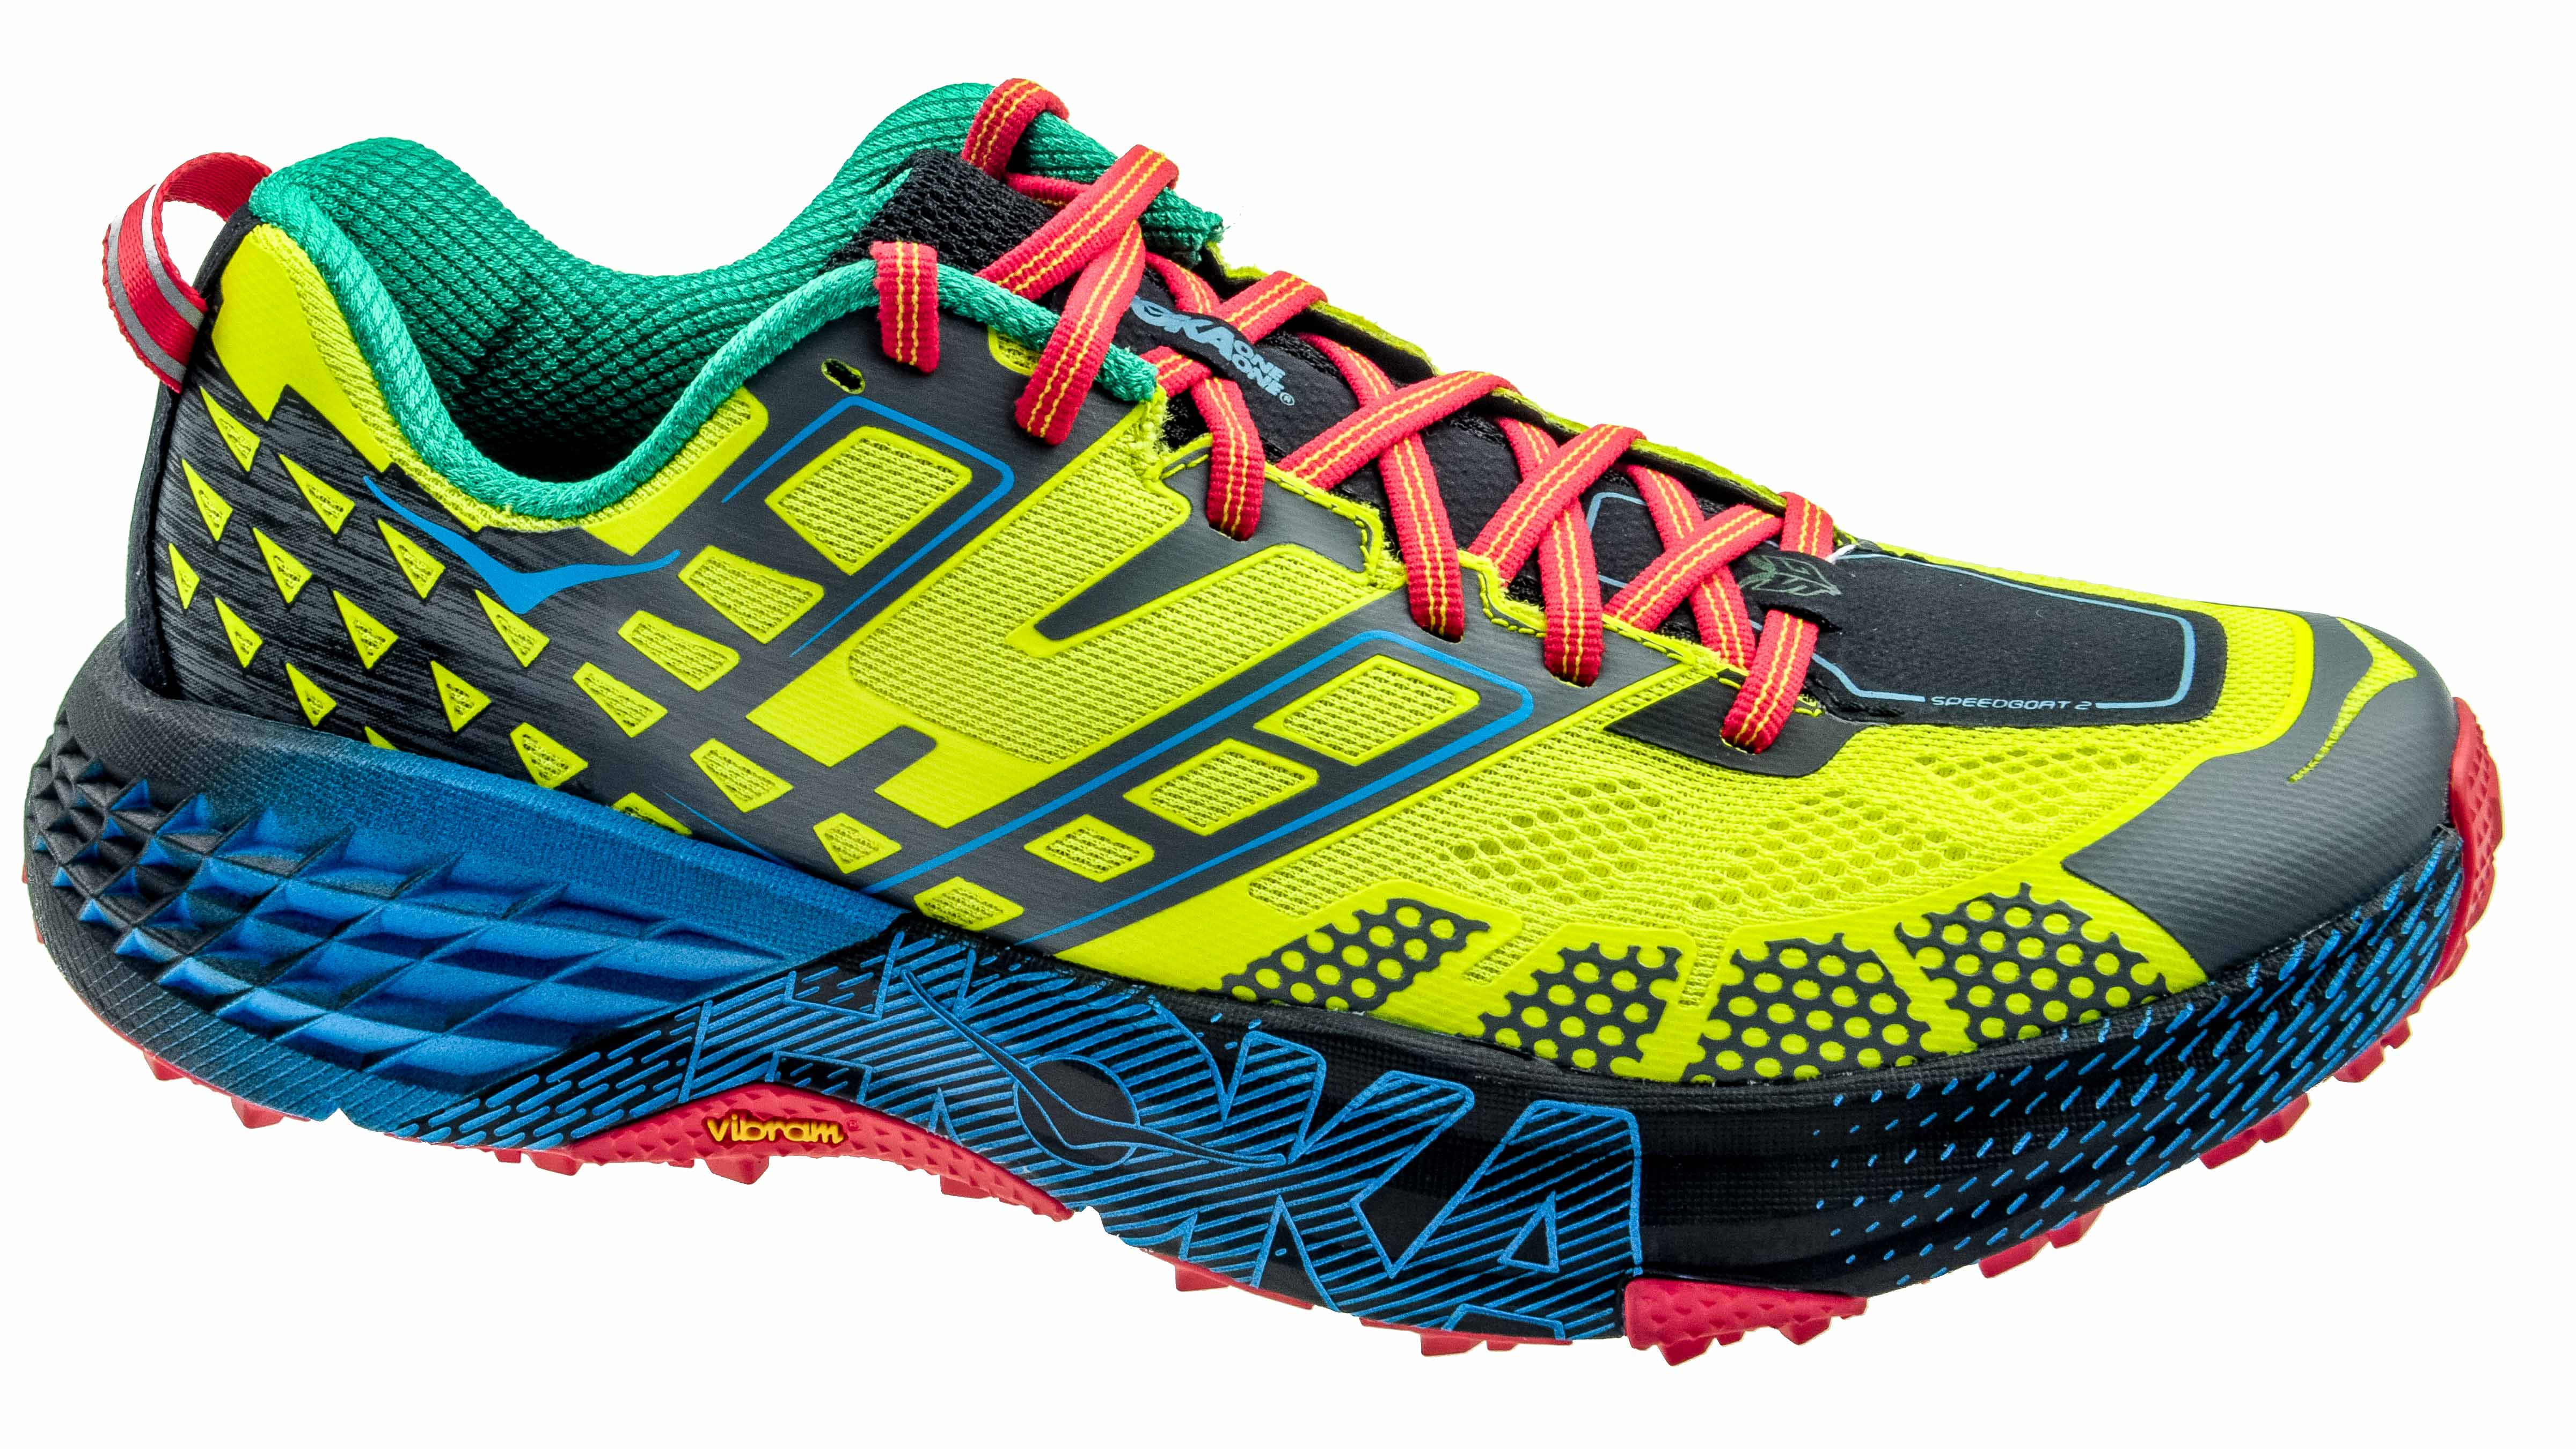 Offering unmatched protection mile after mile, the highly cushioned HOKA ONE ONE Bondi 6 is an everyday road running shoe designed for everyone from the .